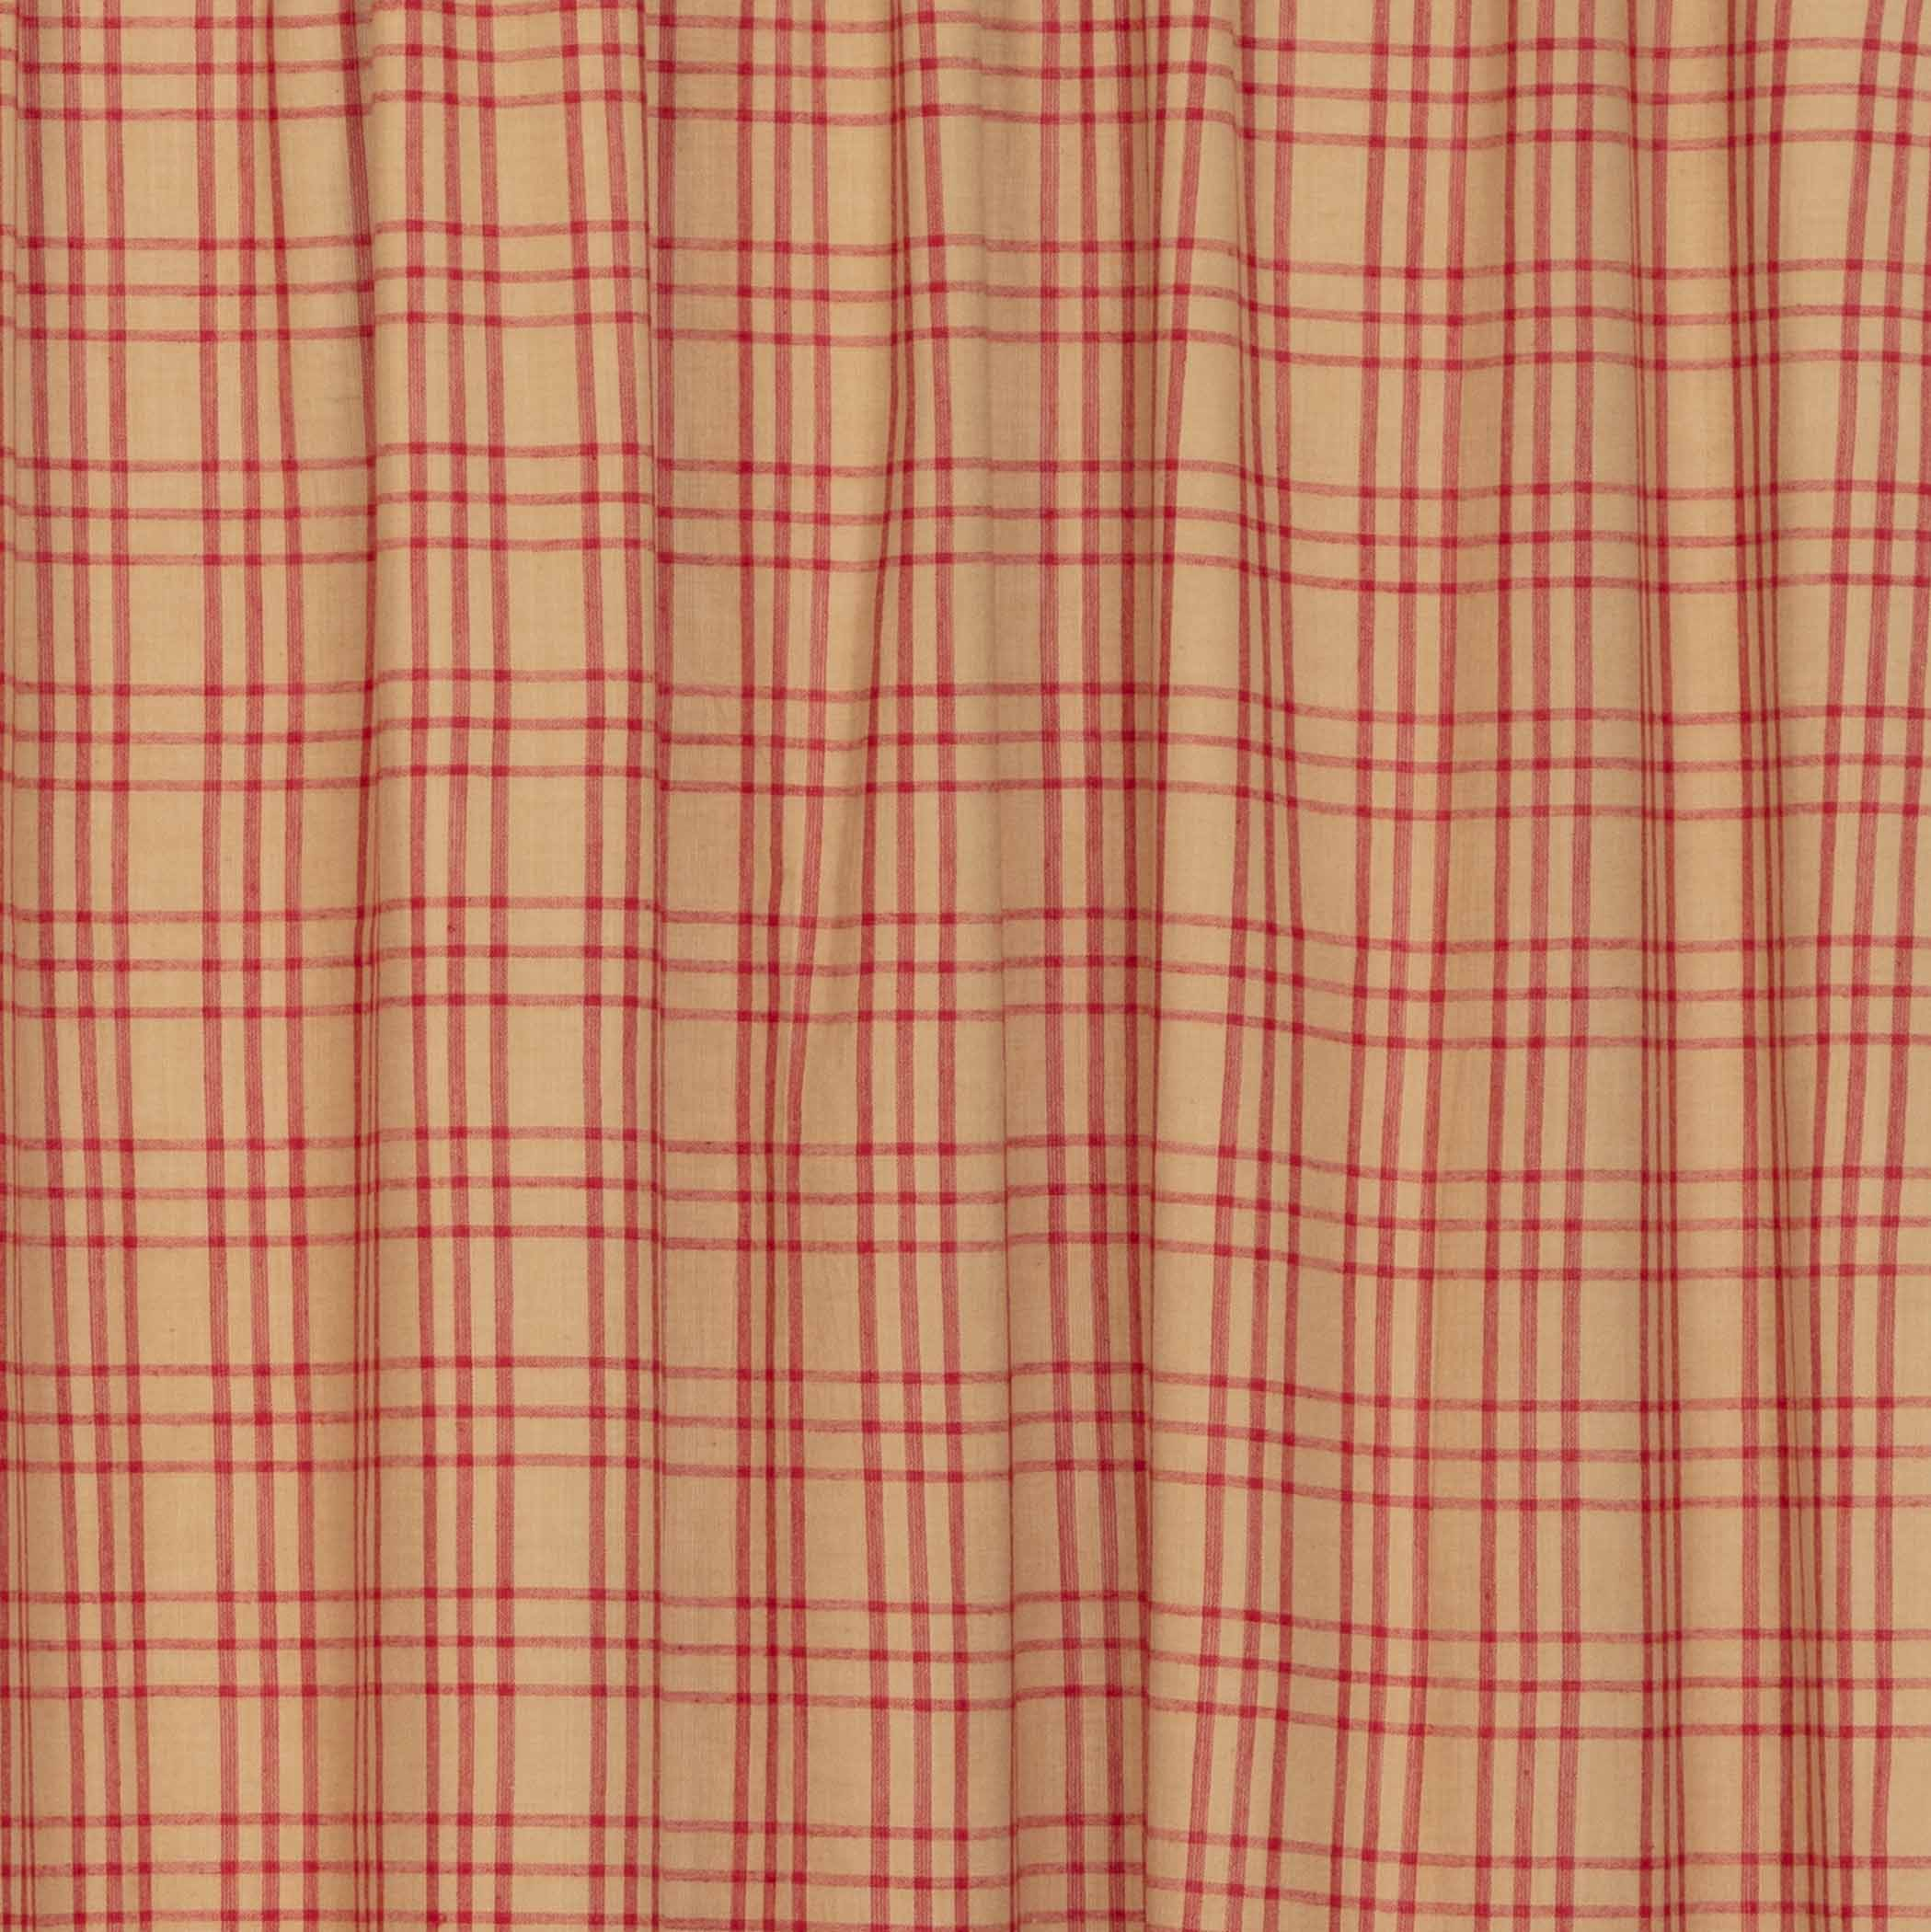 Sawyer-Mill-Red-Plaid-Valance-16x60-image-4